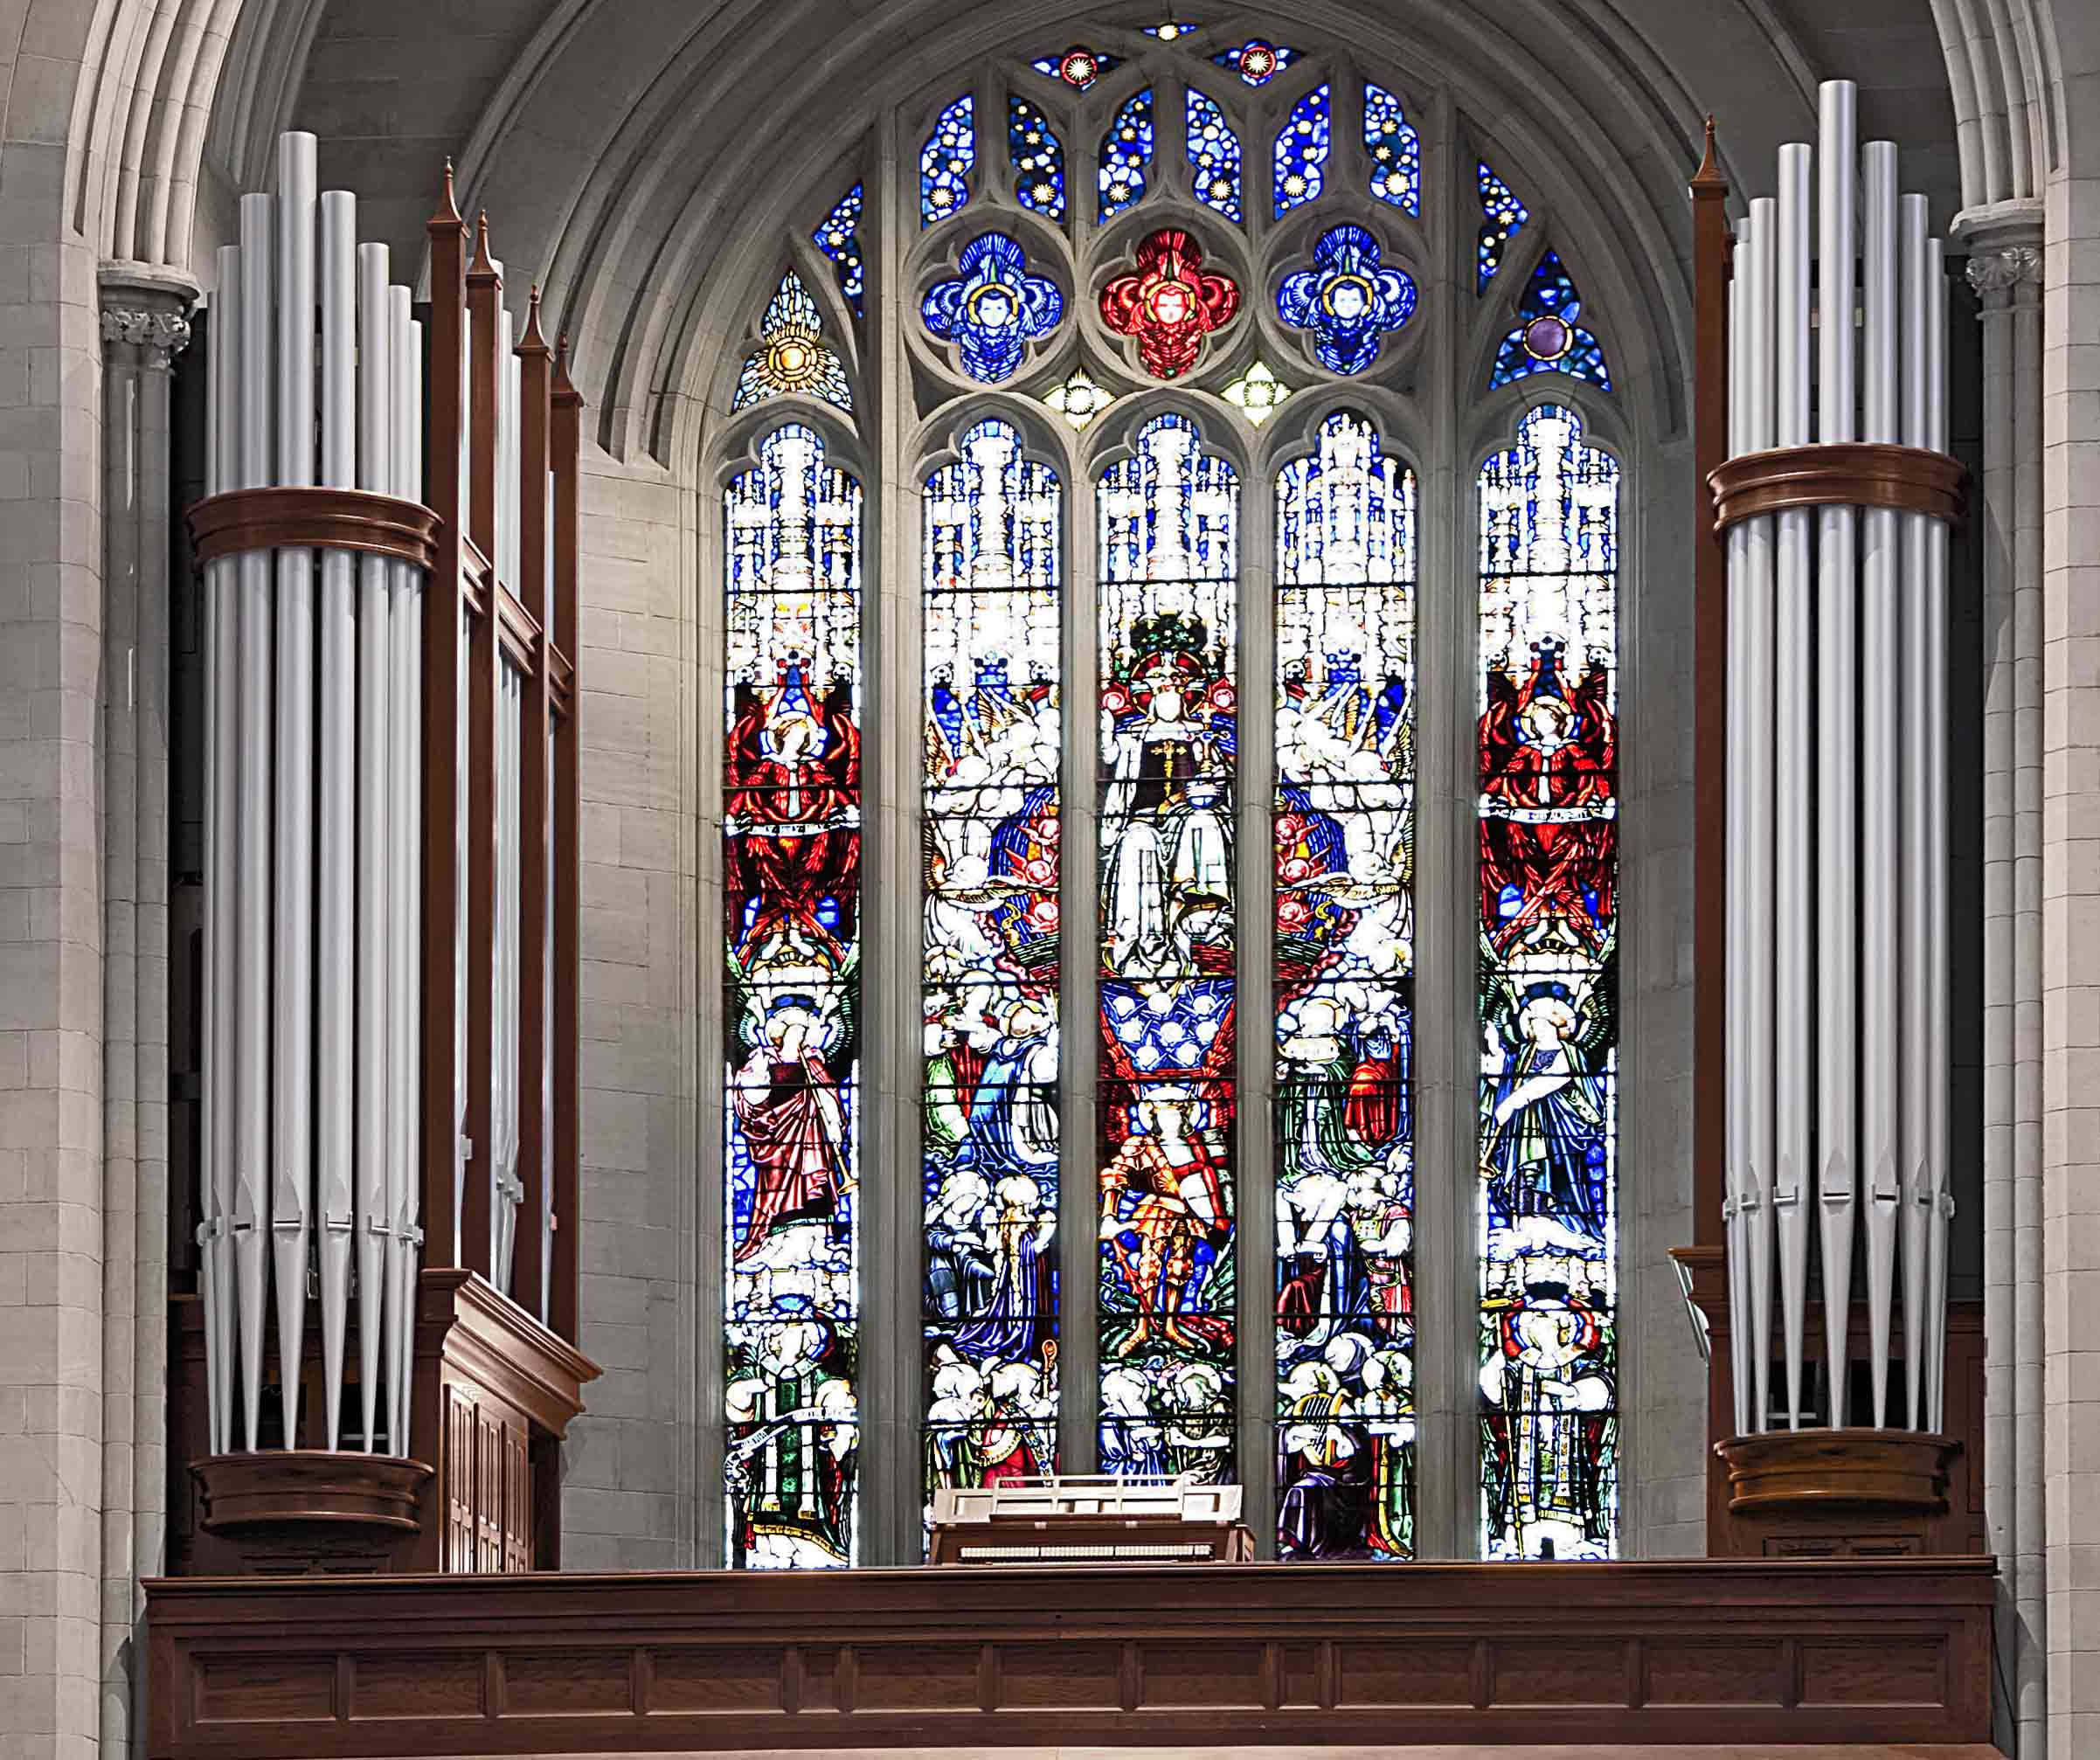 New Antiphonal division, St. John's Cathedral, Denver, Colorado